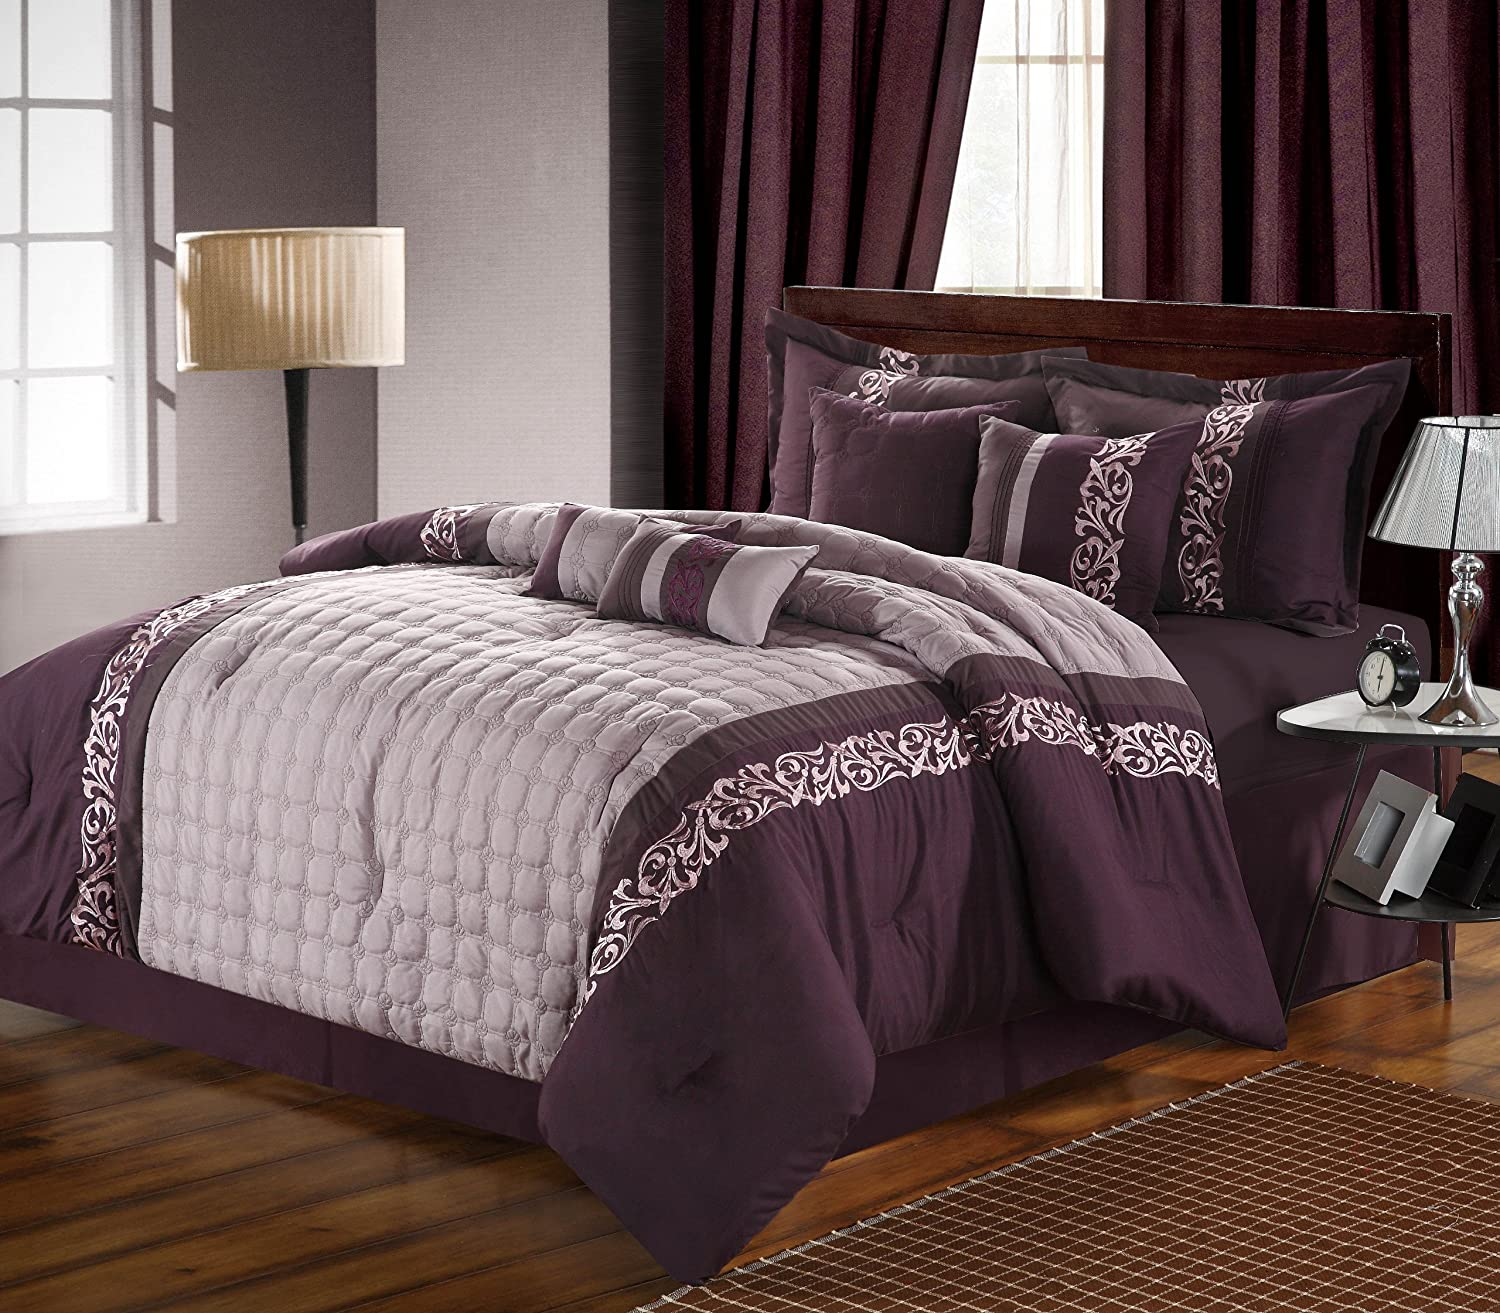 Chic Home 8-Piece Glendale Embroidered Comforter Set, King, Plum/Purple